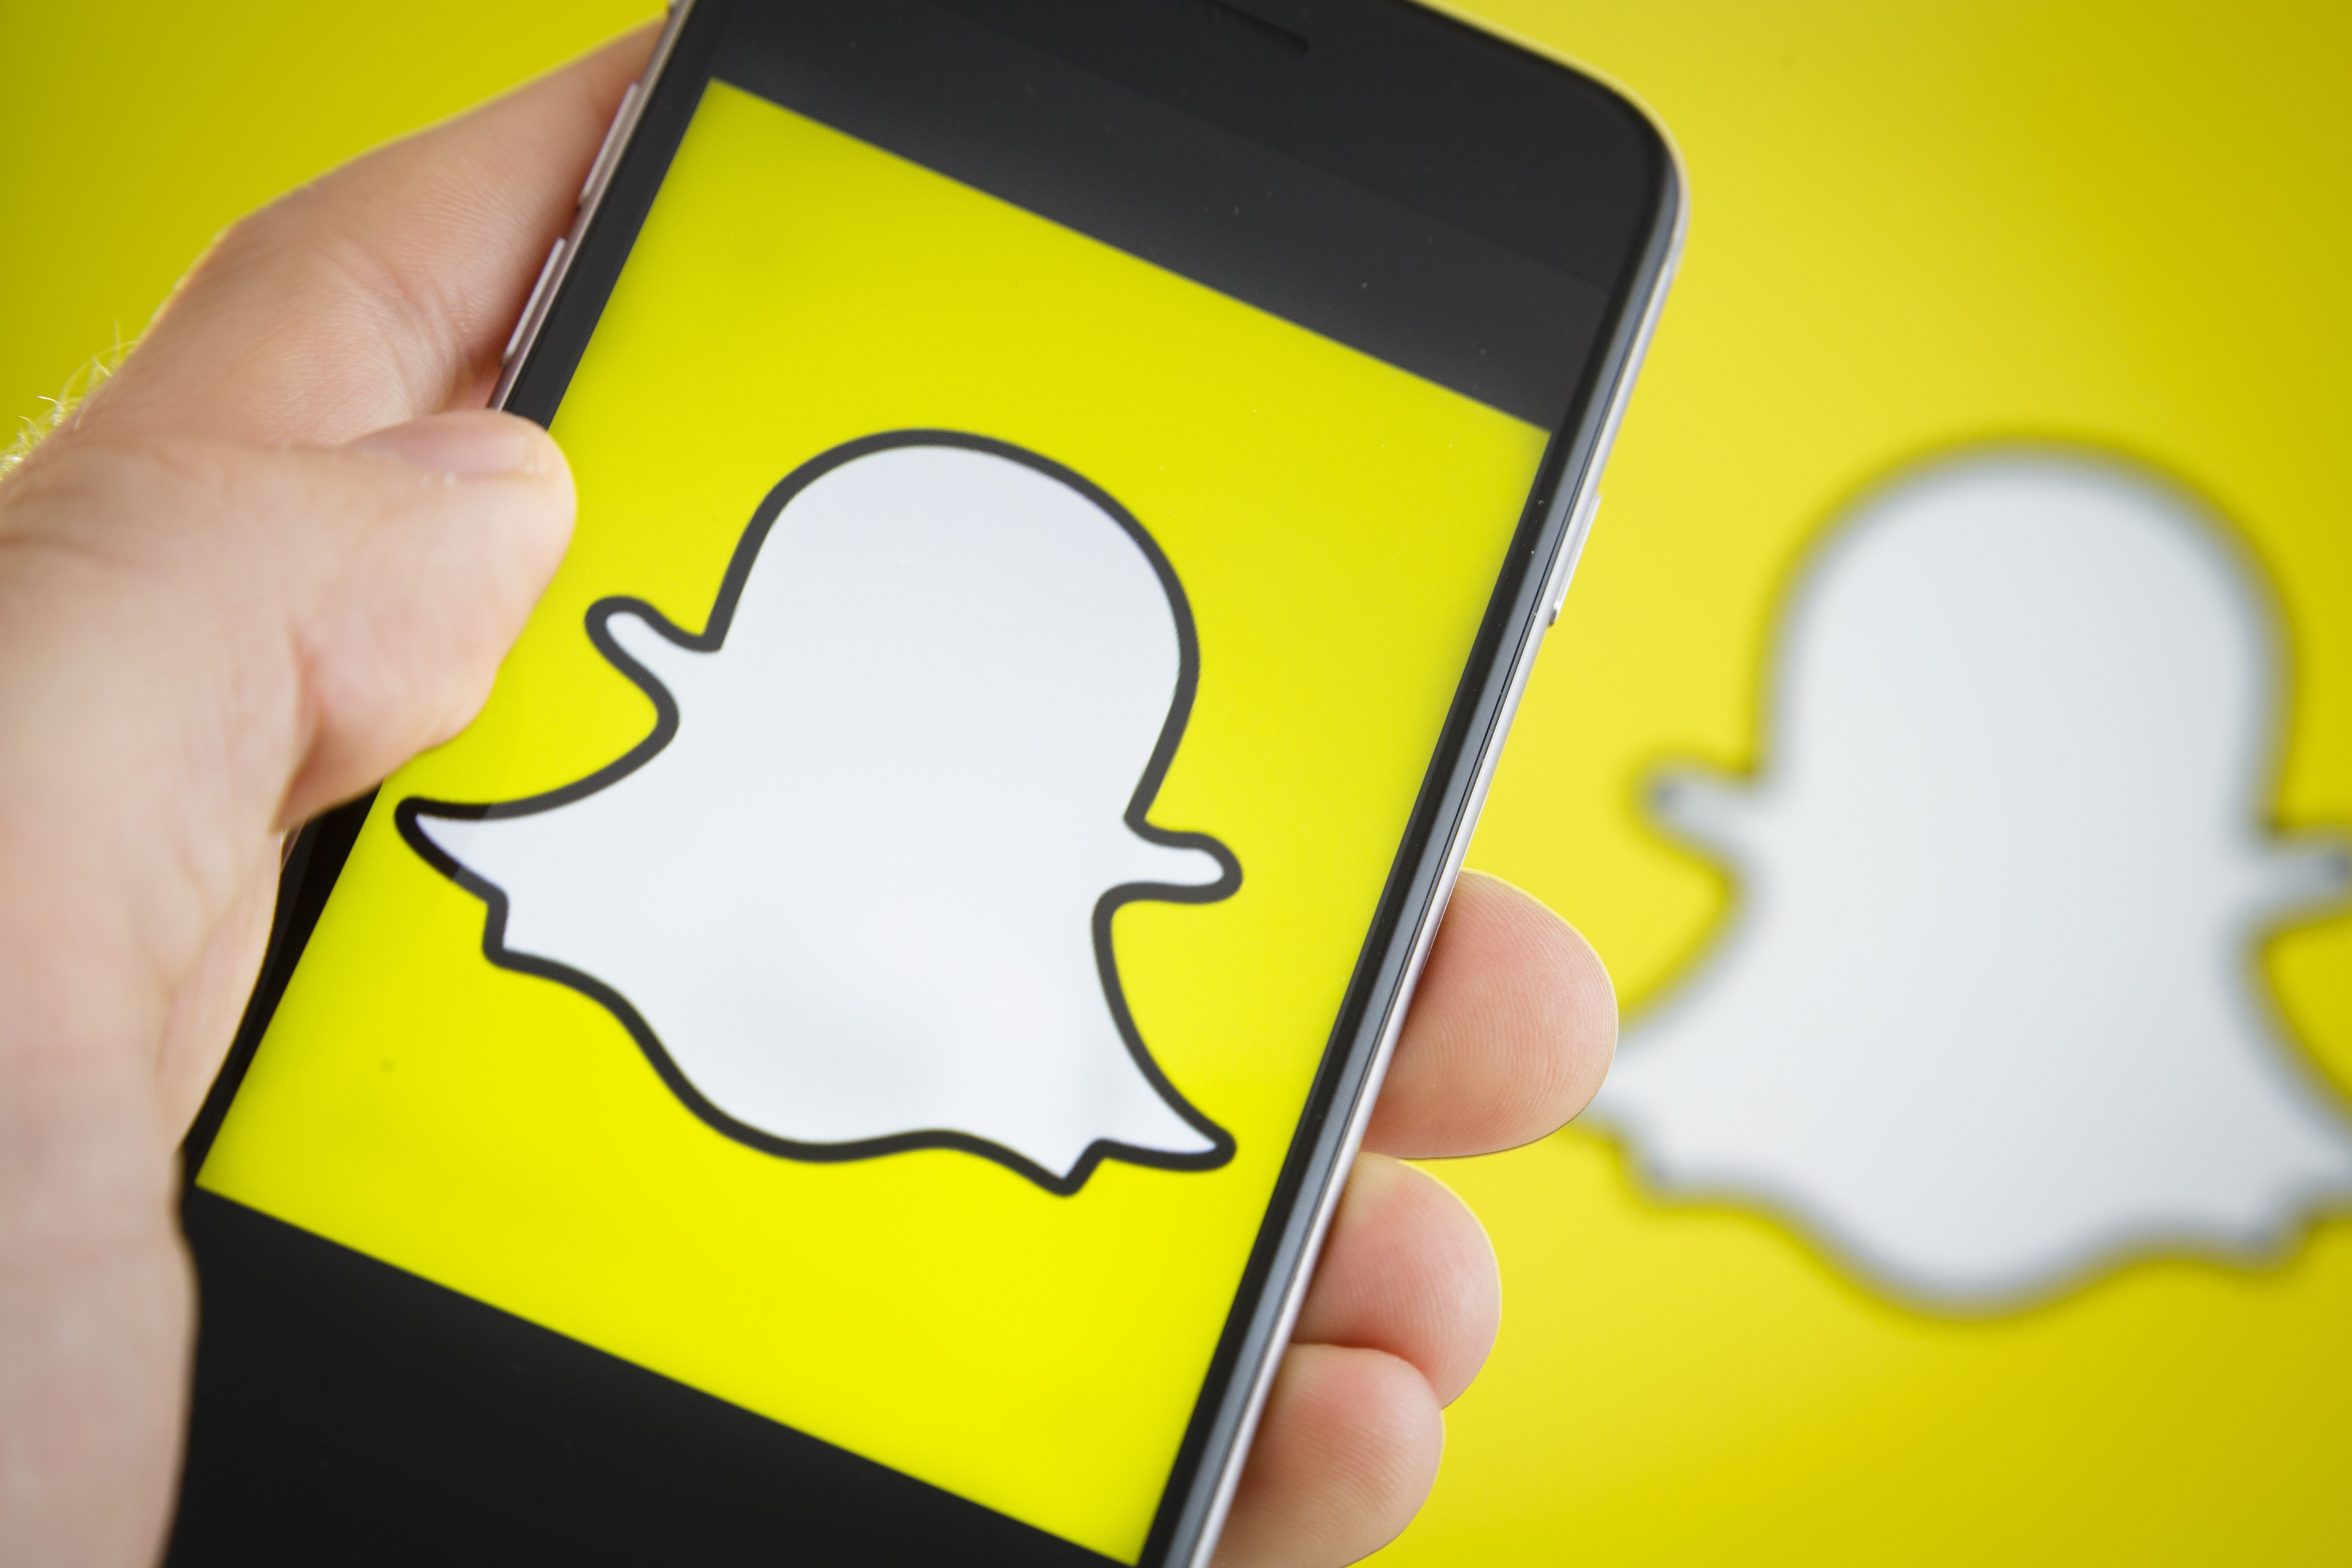 How to get a higher Snapchat score – 5 easy tips